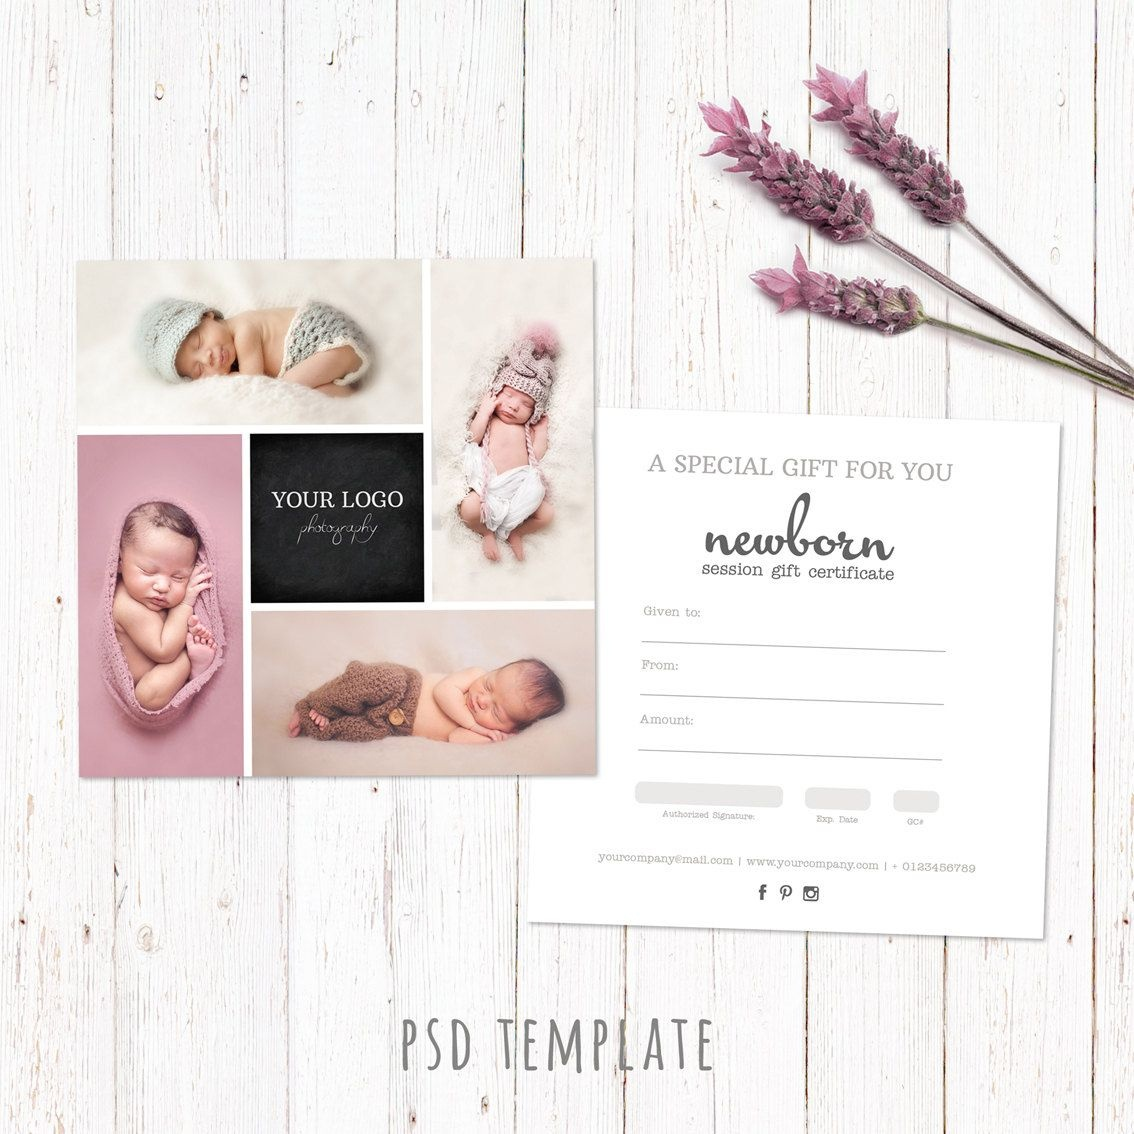 Gift Certificate Template. Newborn Session Photography Gift Card - Free Printable Photography Gift Certificate Template